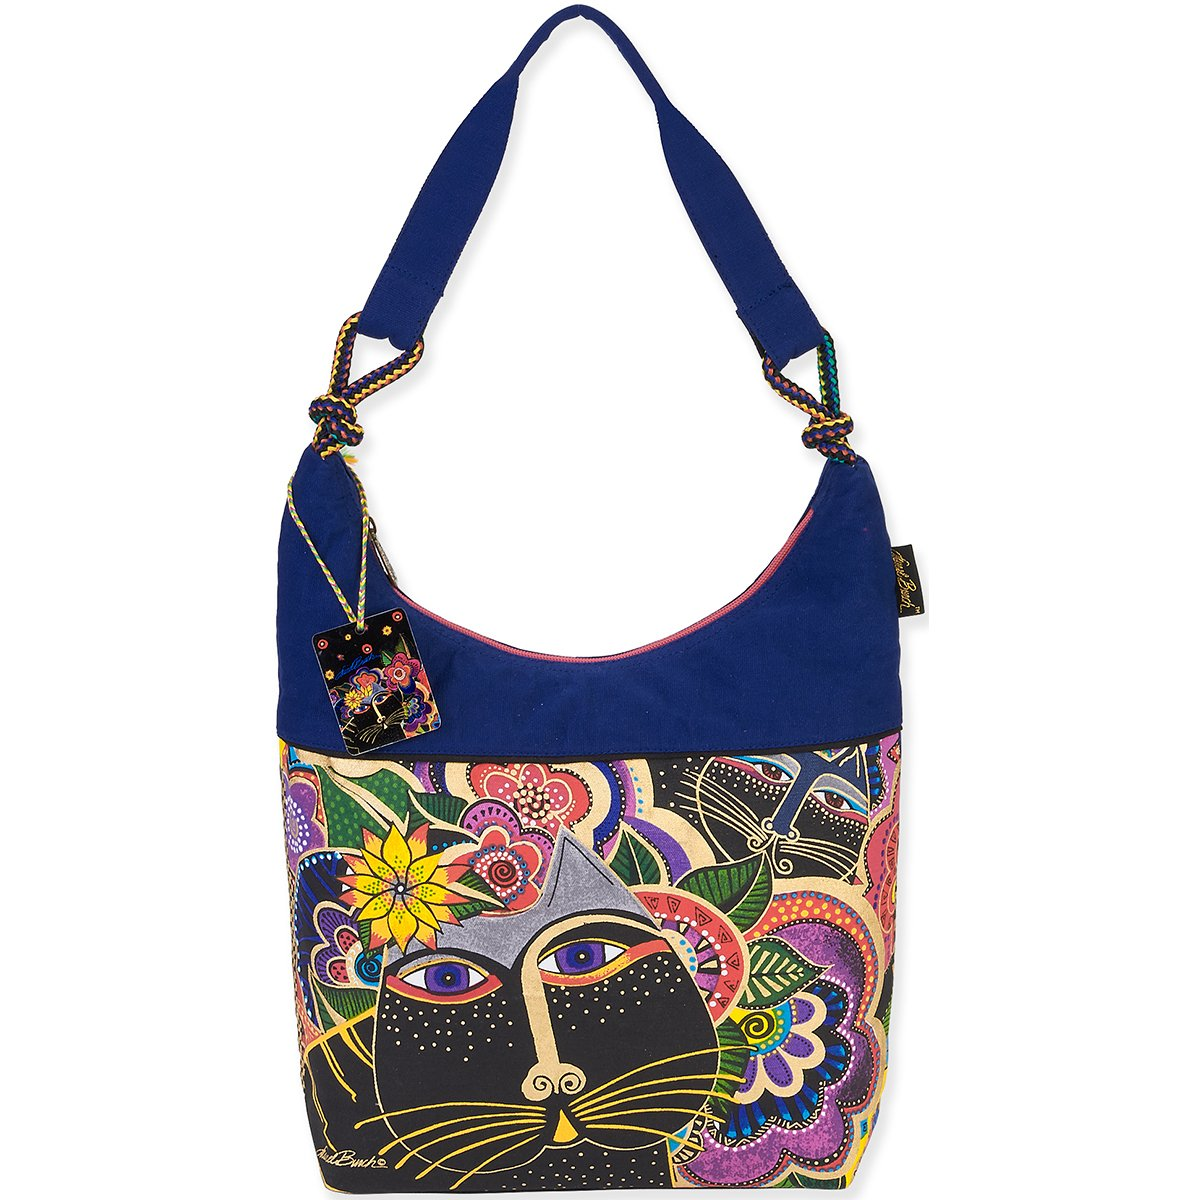 Laurel Burch Scoop Tote, 12.5 by 16 by 3.5-Inch, Carlotta s Cats